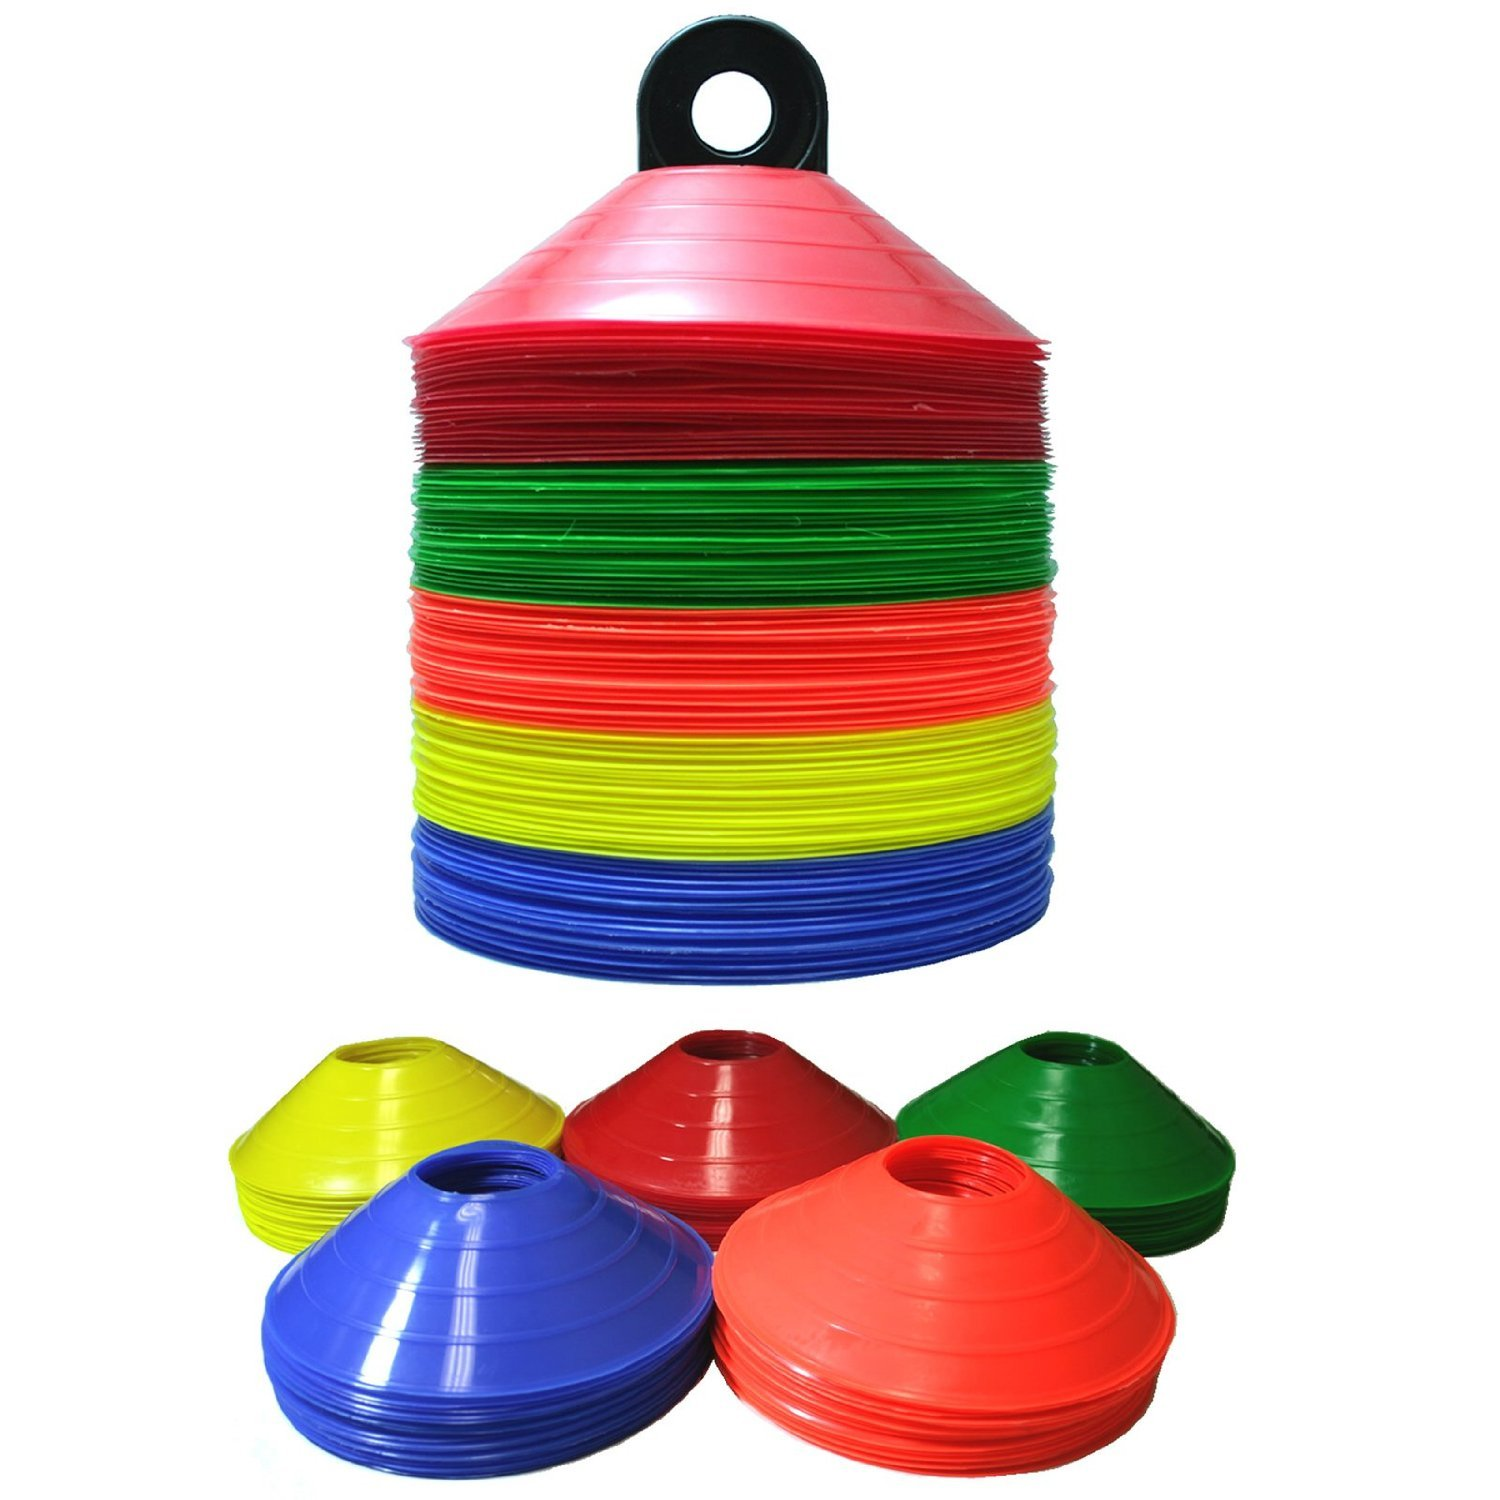 30 Disc Cones Soccer Football Field Marking Coaching Cones - Assorted Colors …